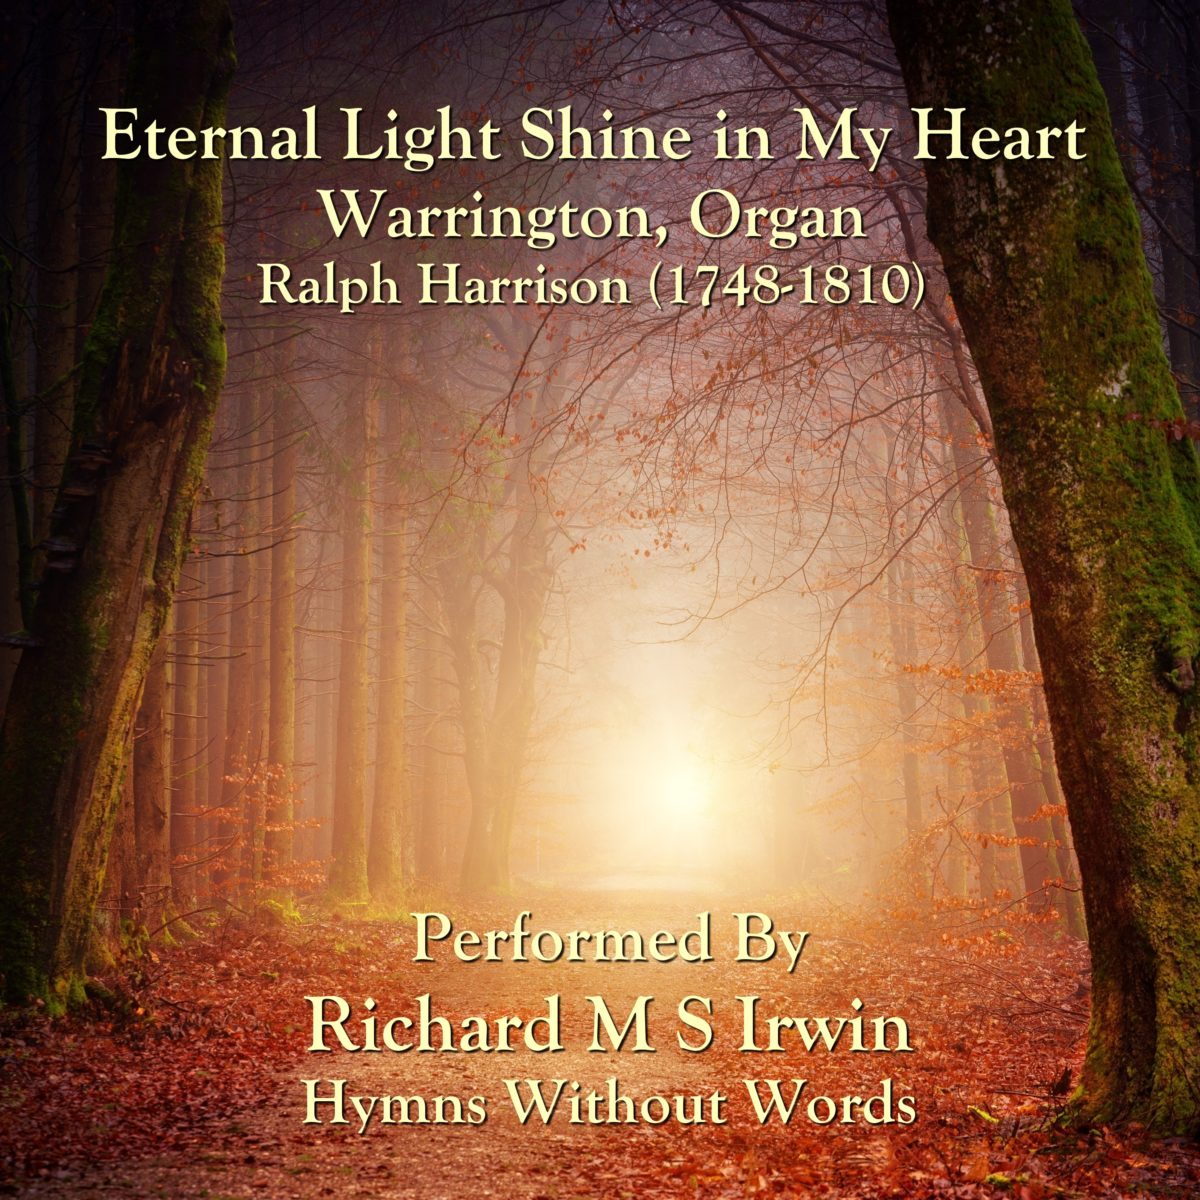 Eternal Light Shine In My Heart (Warrington, Organ, 3 Verses)